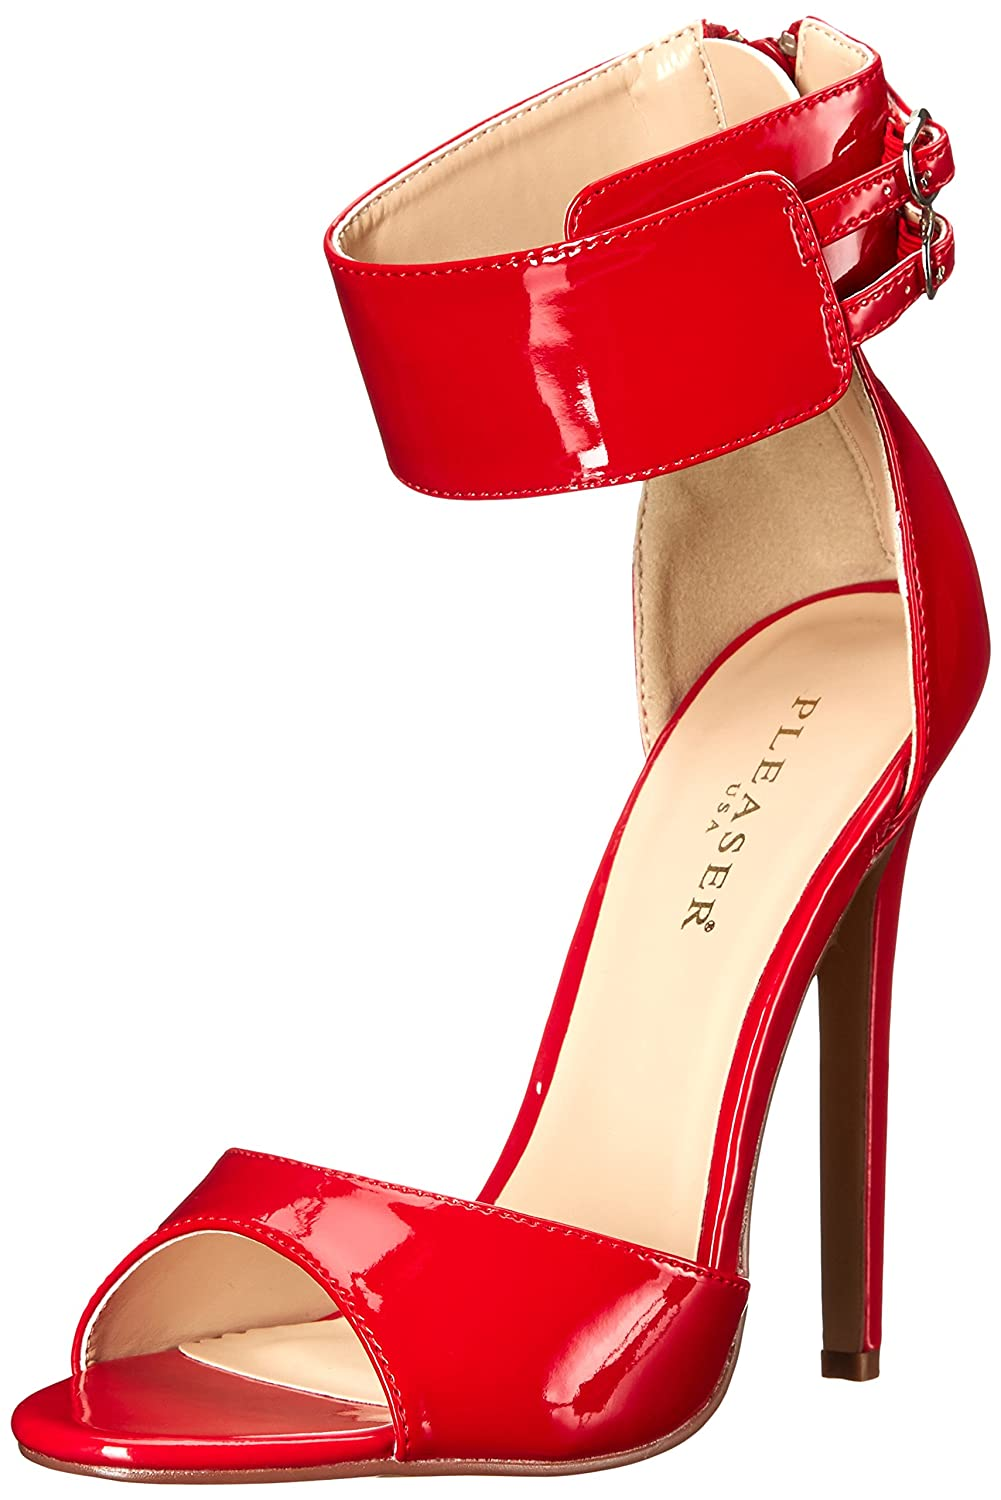 Pleaser Women's SEXY19/R Dress Sandal B00MH2KHBQ 12 B(M) US|Red Patent